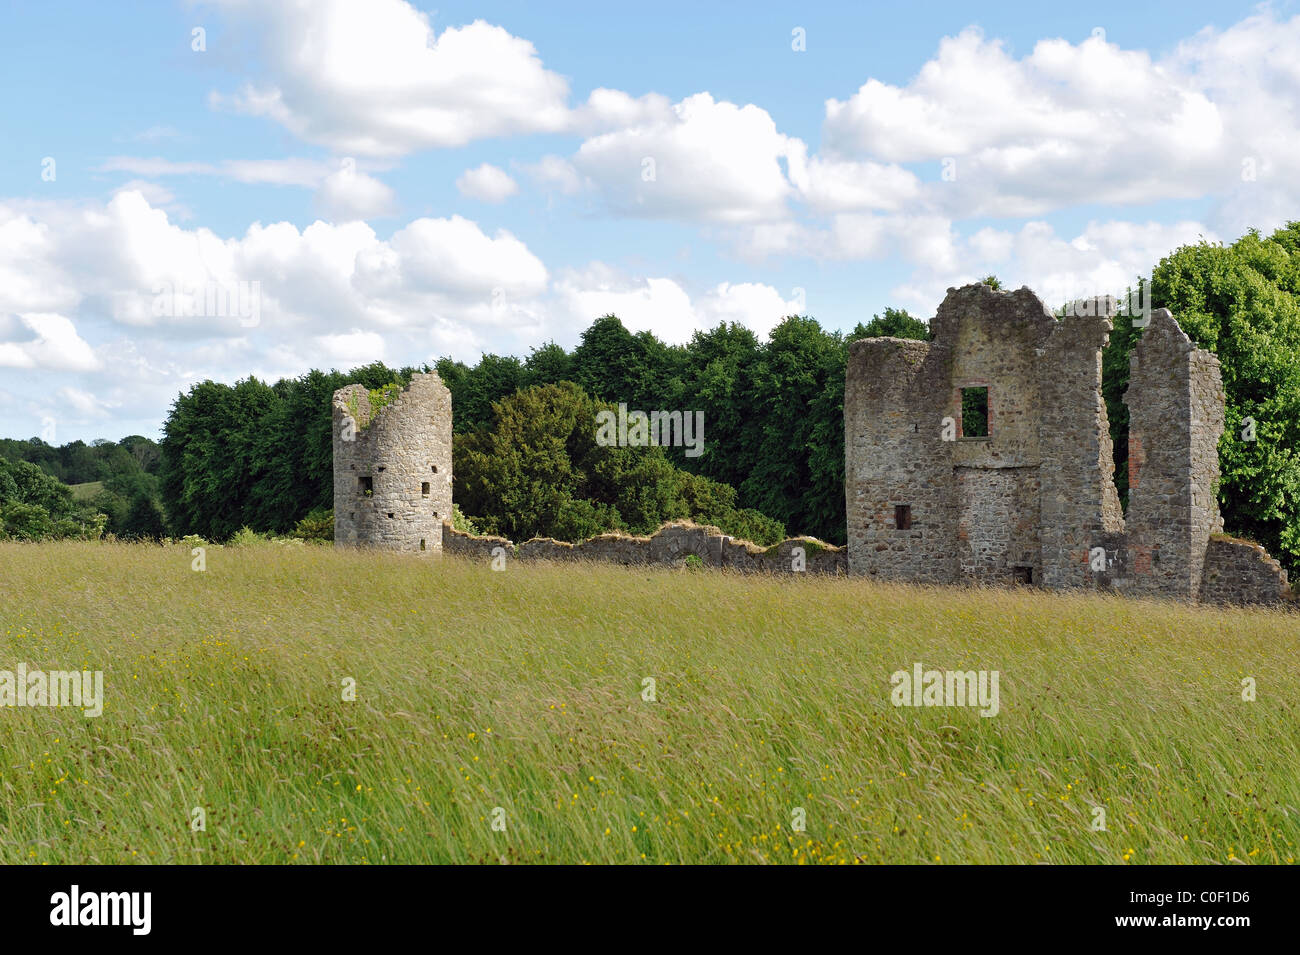 View of Crom castle ruins in summer time - Stock Image